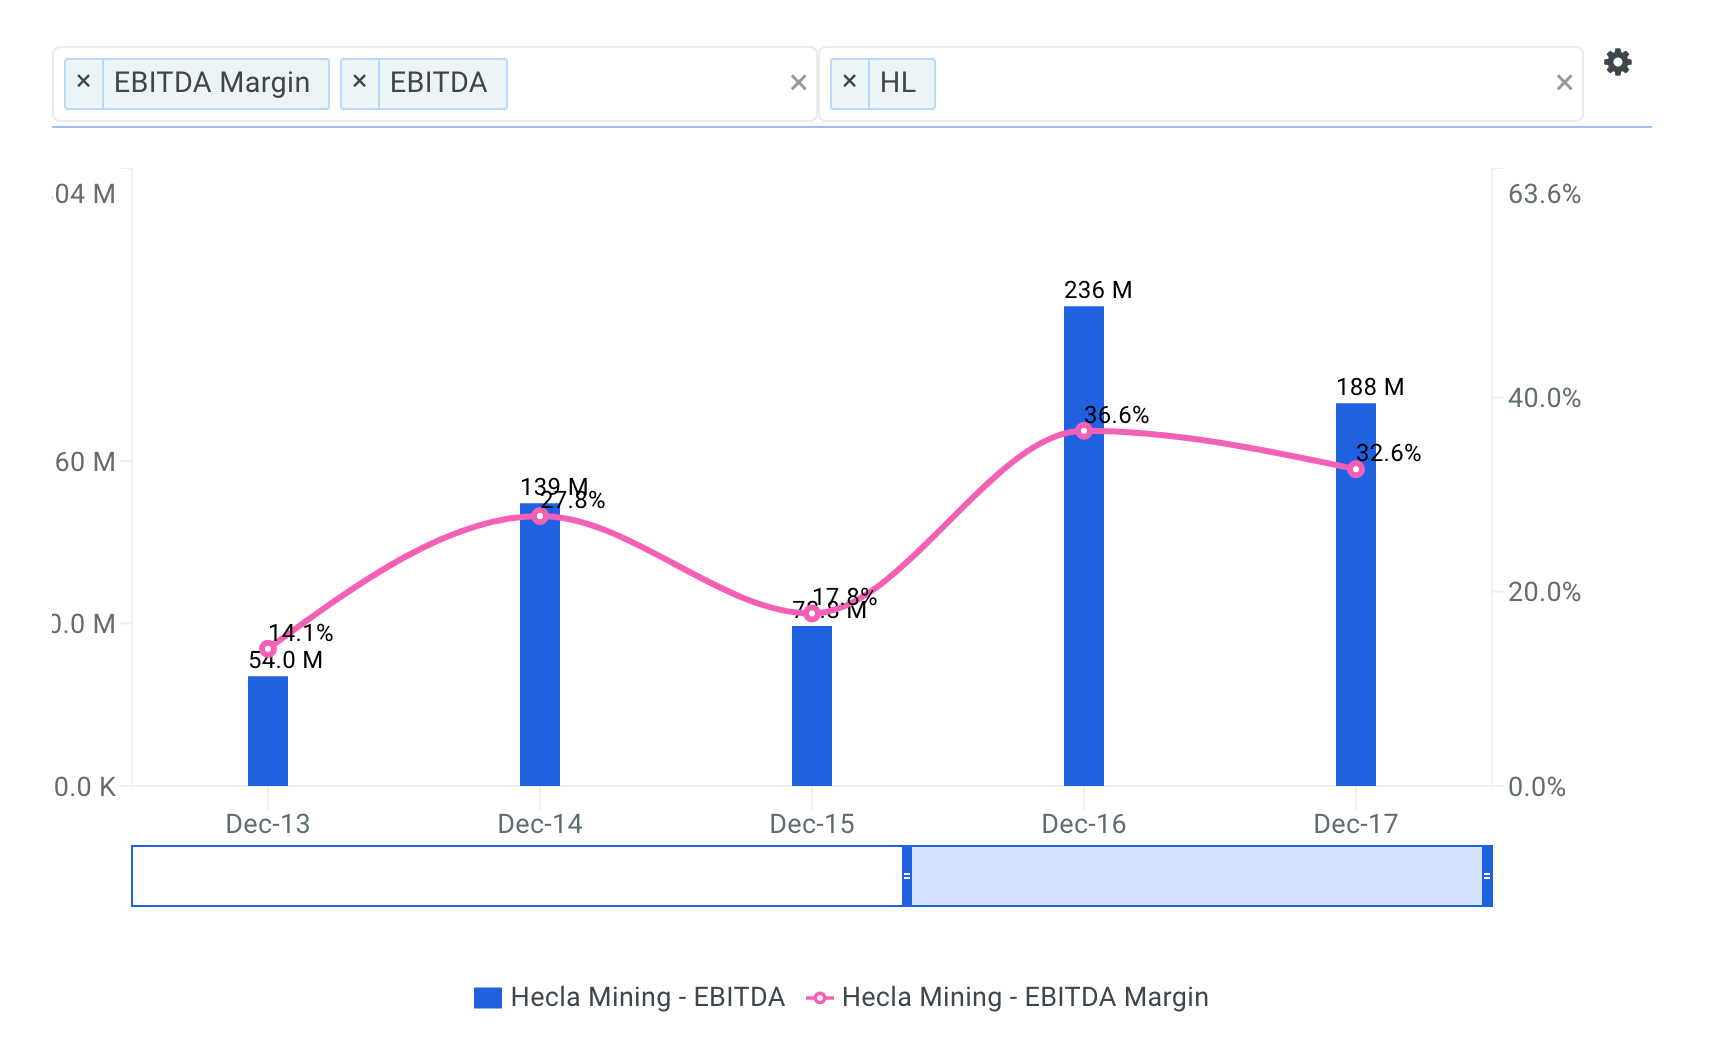 Hecla Mining Historical and Projected EBITDA Margin Chart